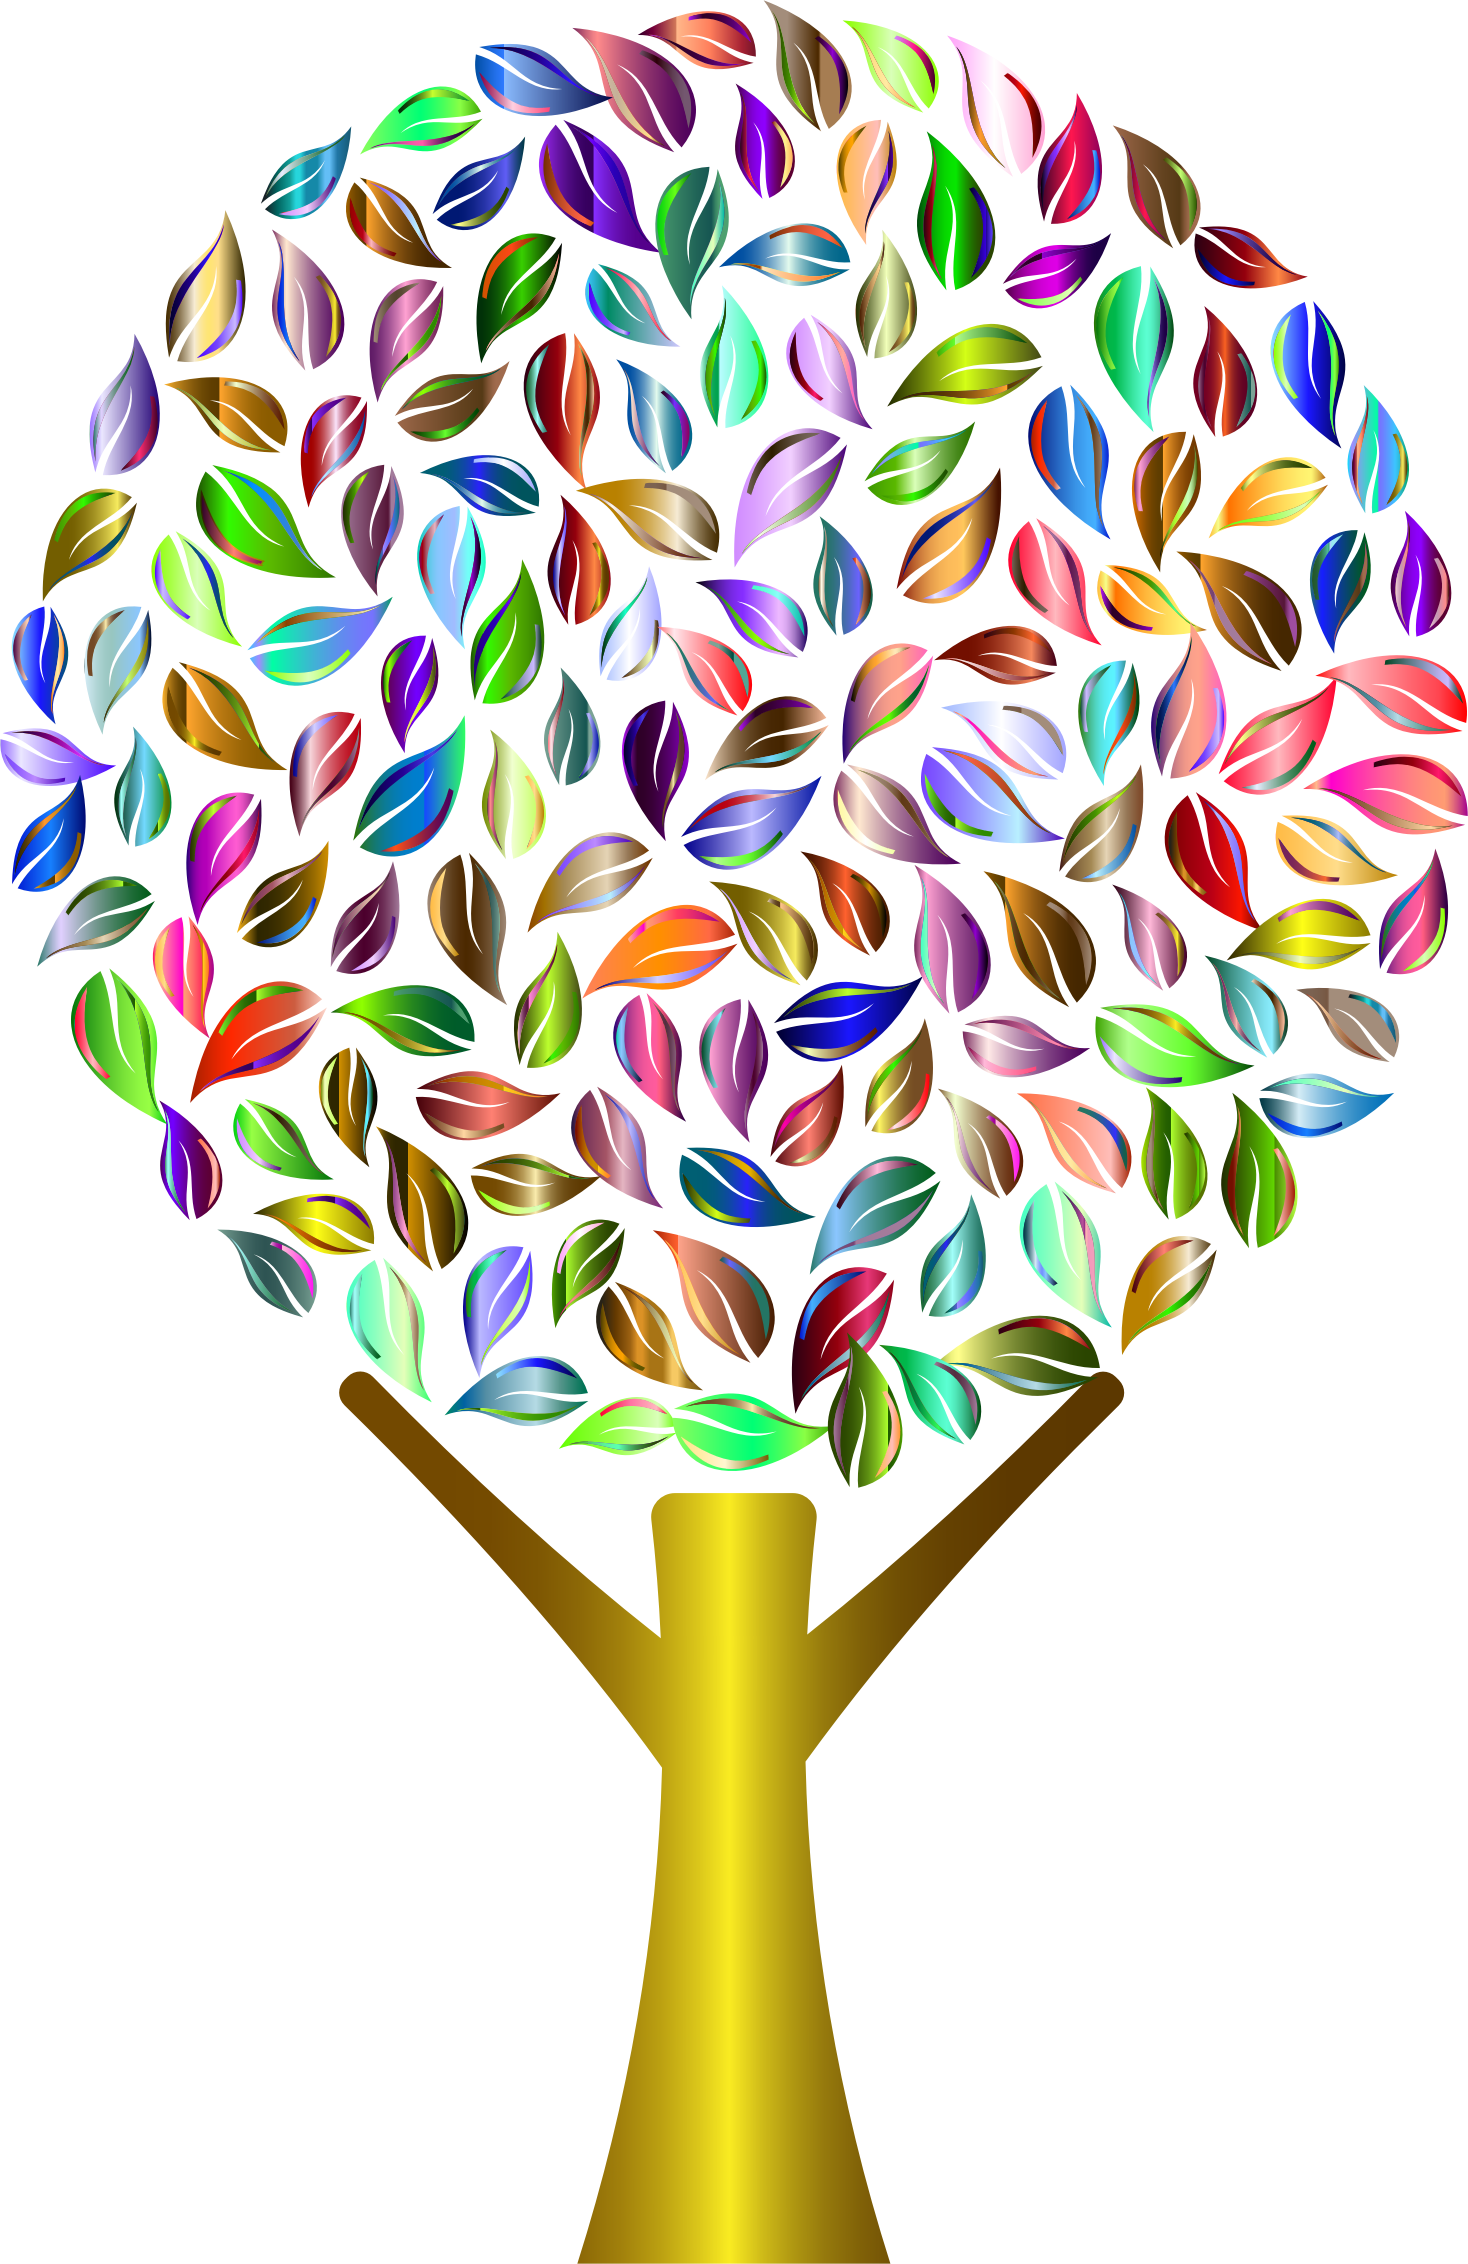 Number 2 clipart abstract. Prismatic tree no background